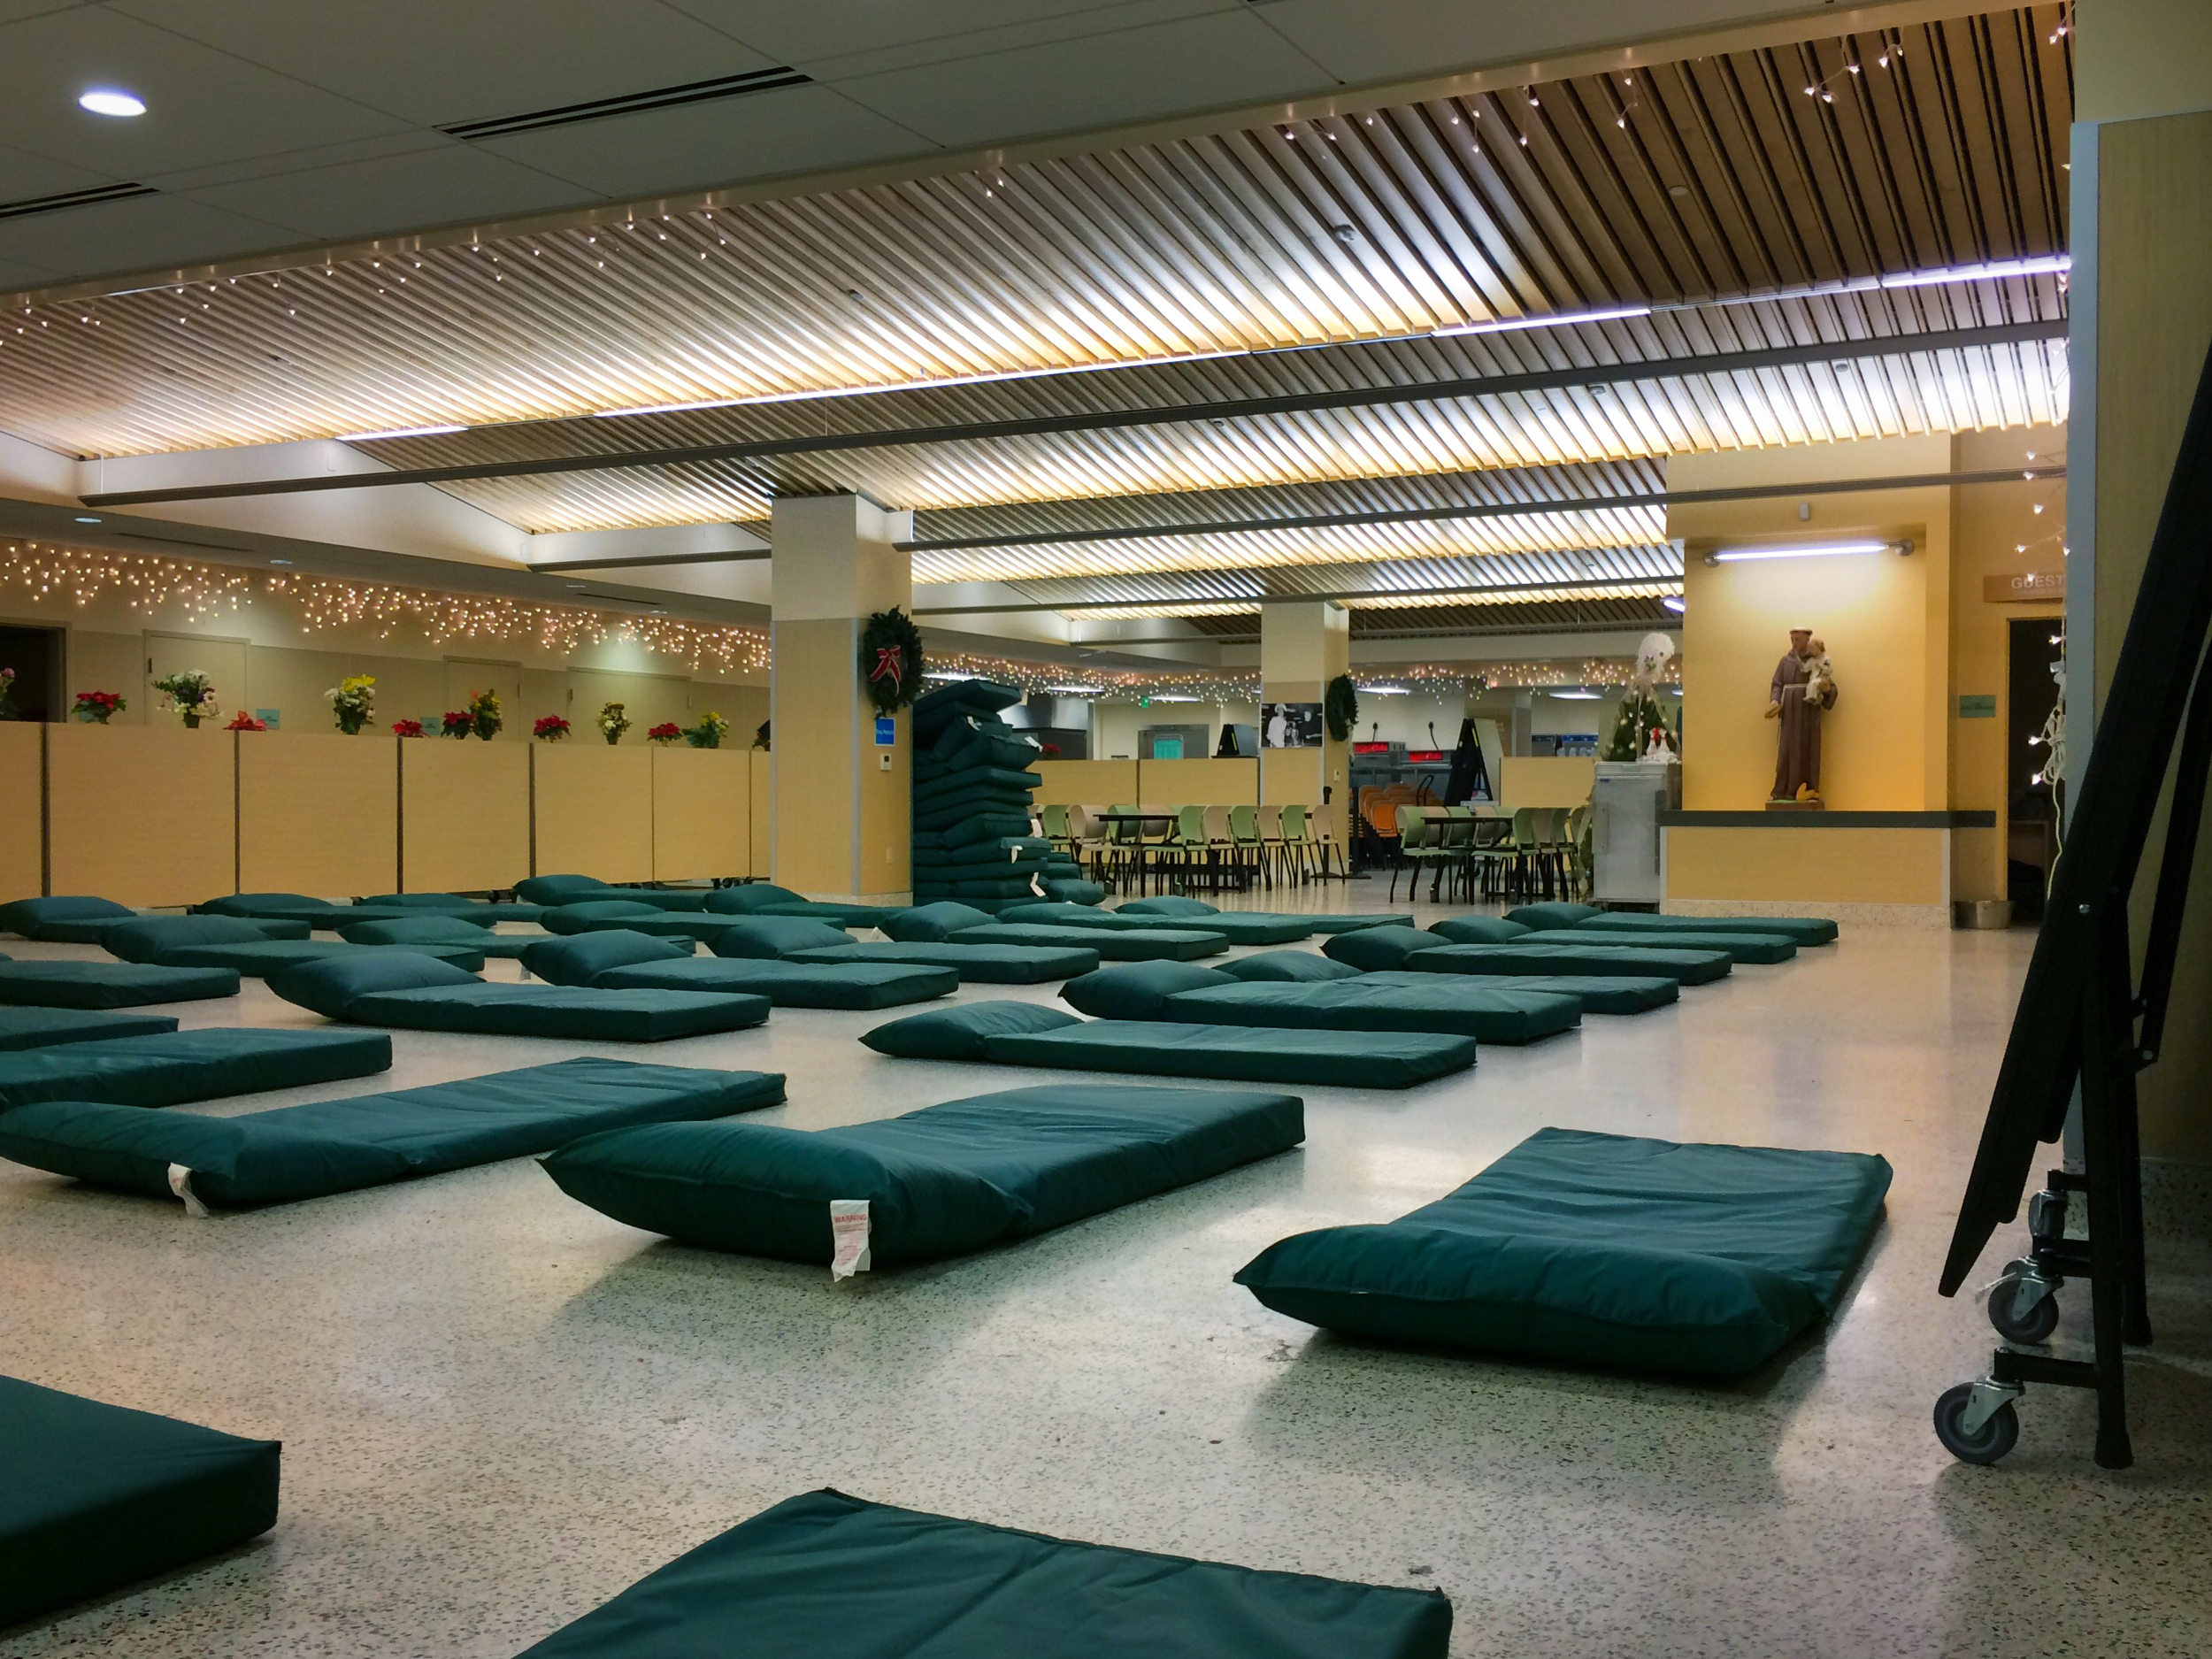 The St. Anthony's Dining Room transformed into an emergency shelter. Photo courtesy of St. Anthony's.